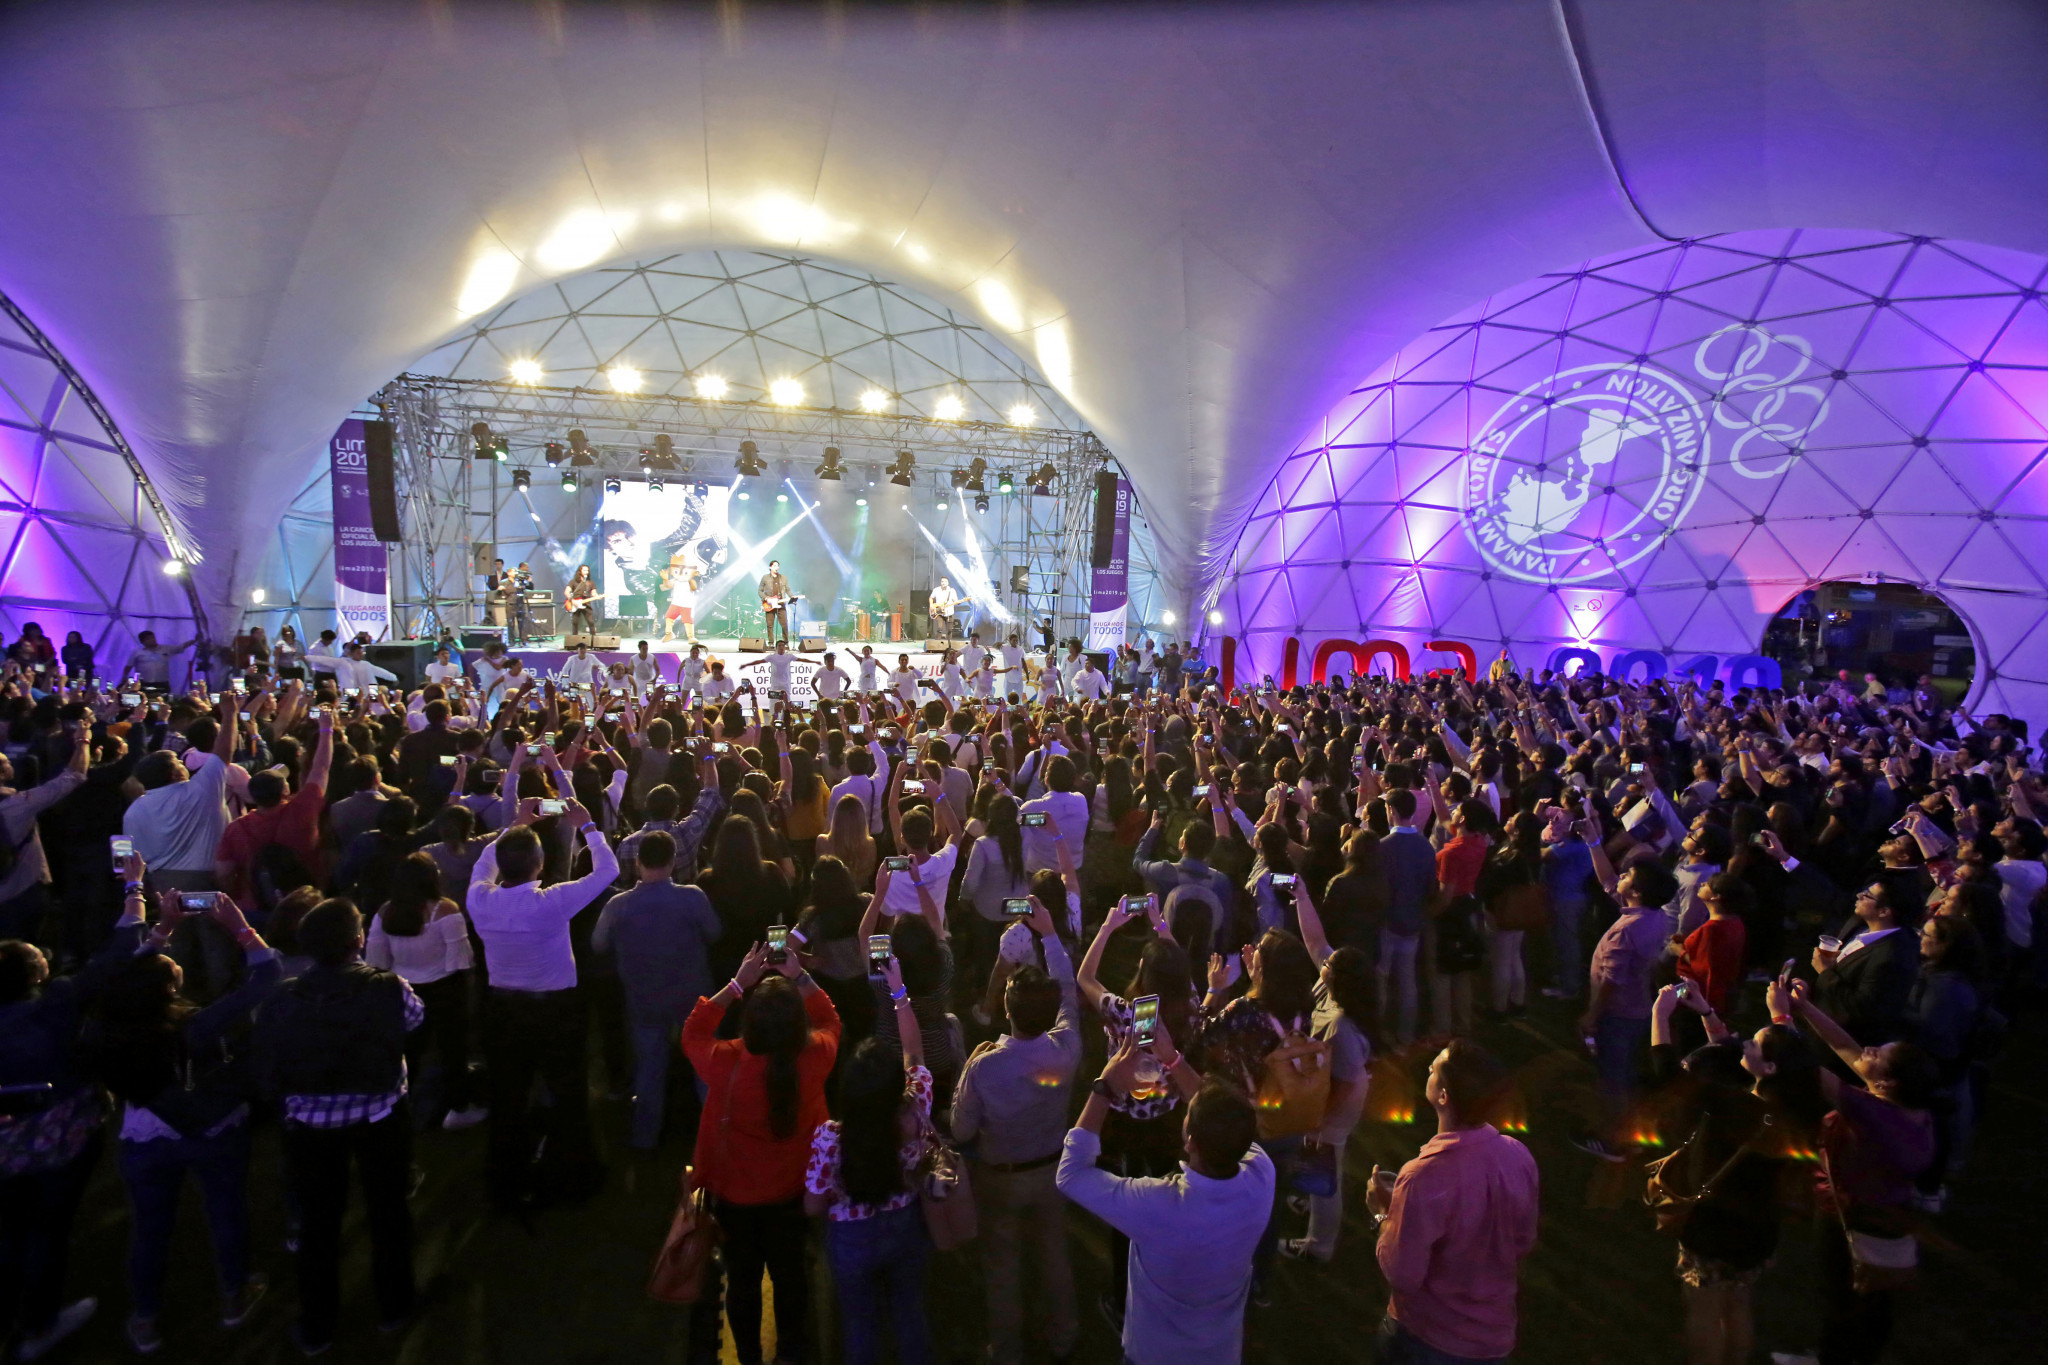 A live concert was held at the Domos Art outdoor exhibition space in San Miguel to celebrate 100 days to go until the Lima 2019 Pan American and Parapan American Games ©Lima 2019